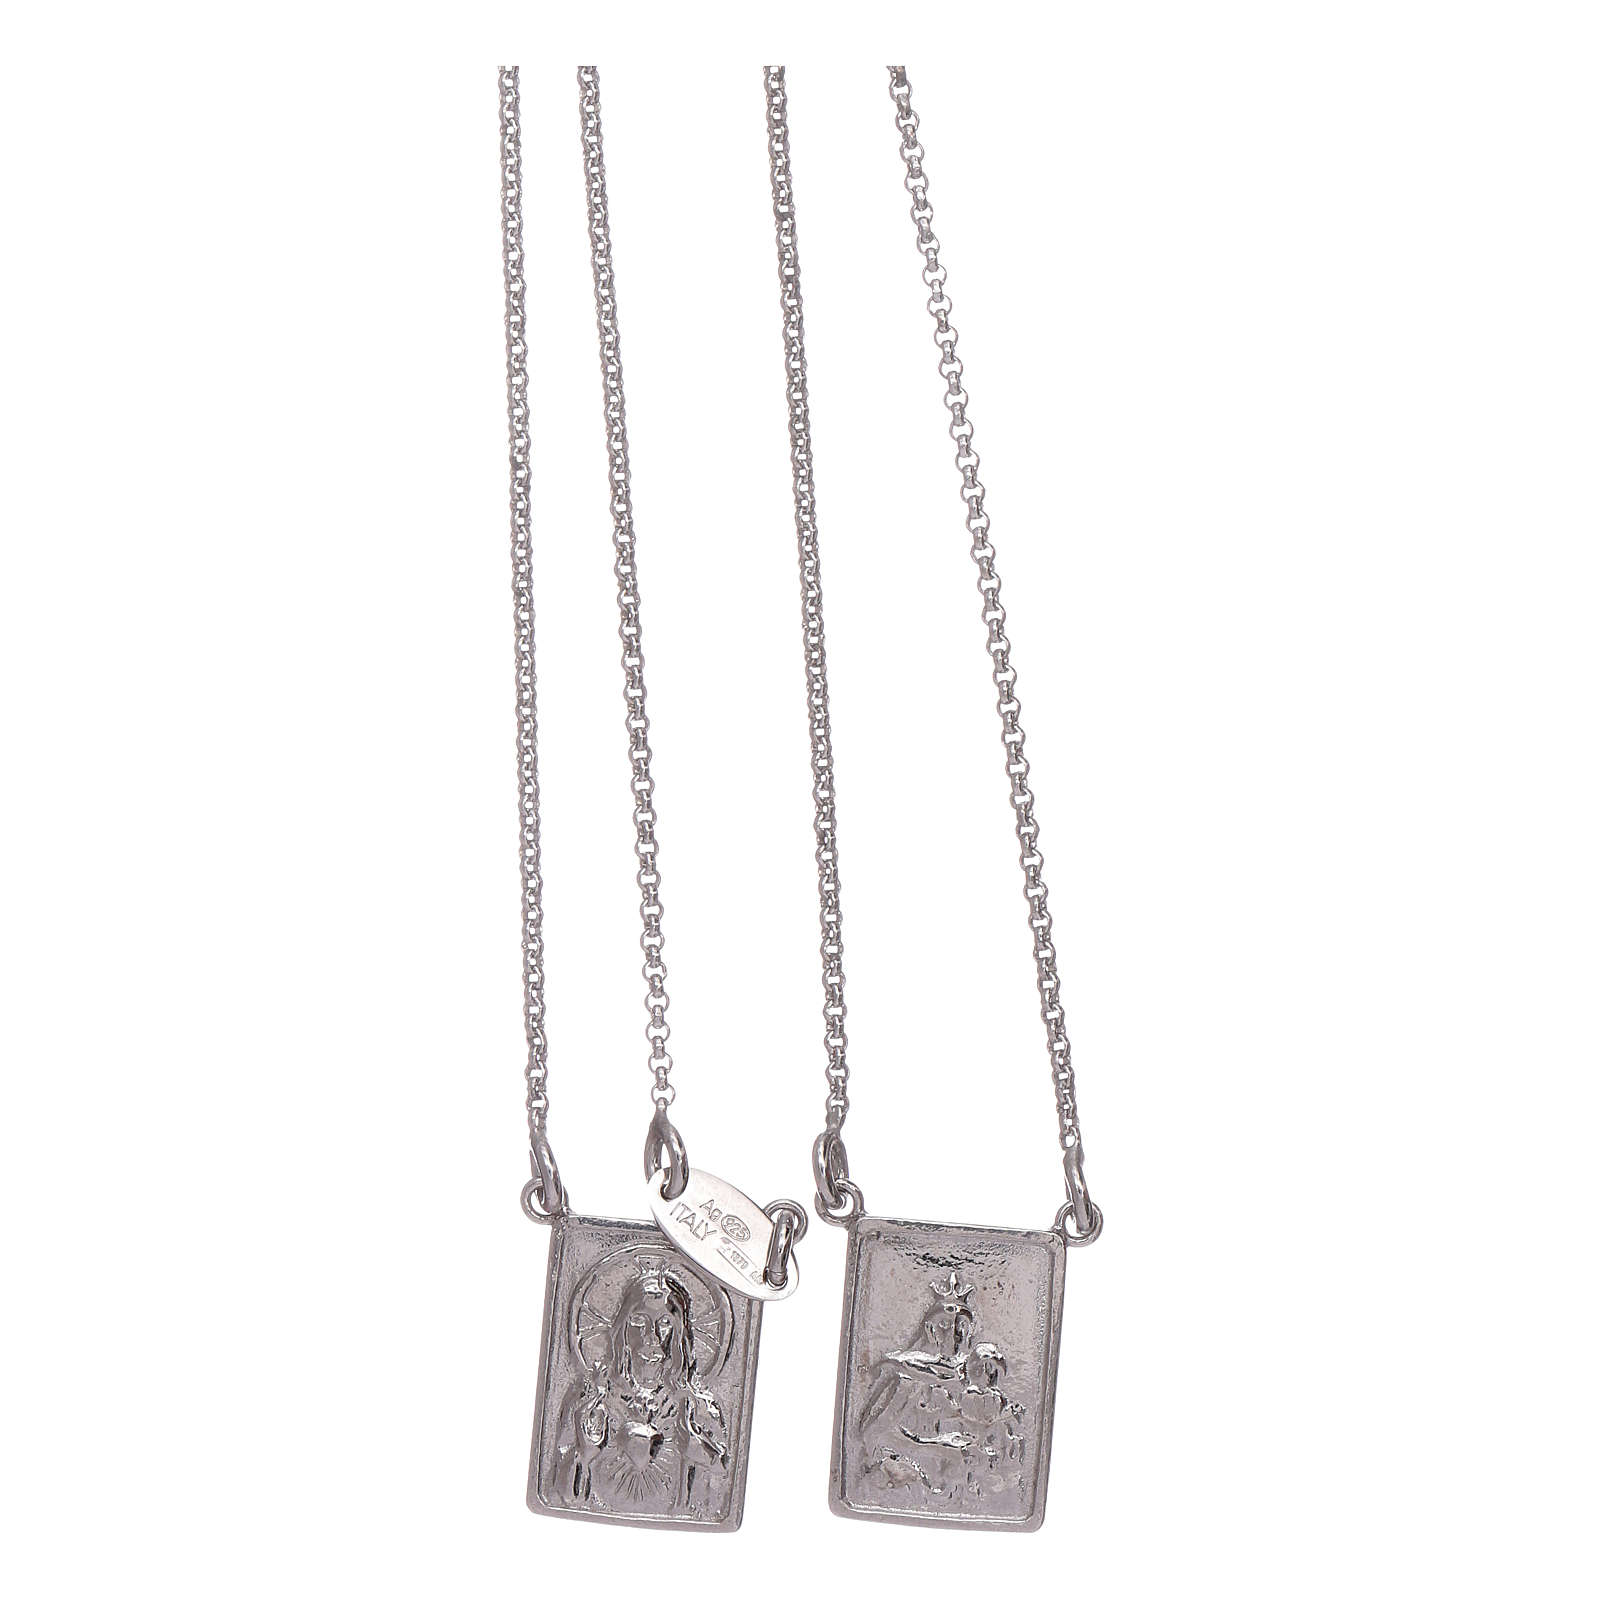 Bachelor necklace in 925 sterling silver finished in rhodium with Our Lady and Jesus medal 4